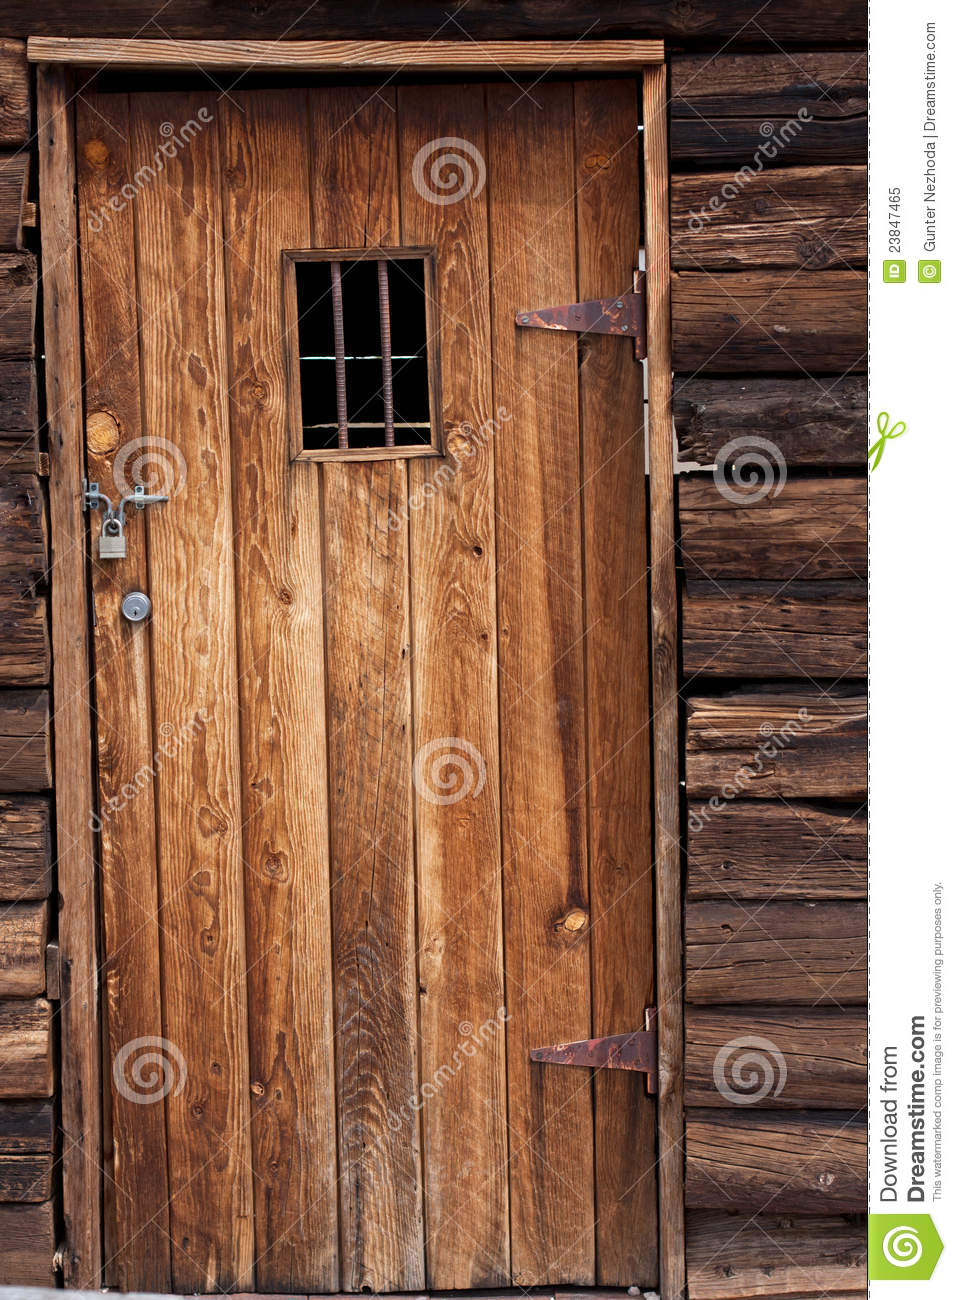 Old Western Jail Door Stock Image Image Of Architecture